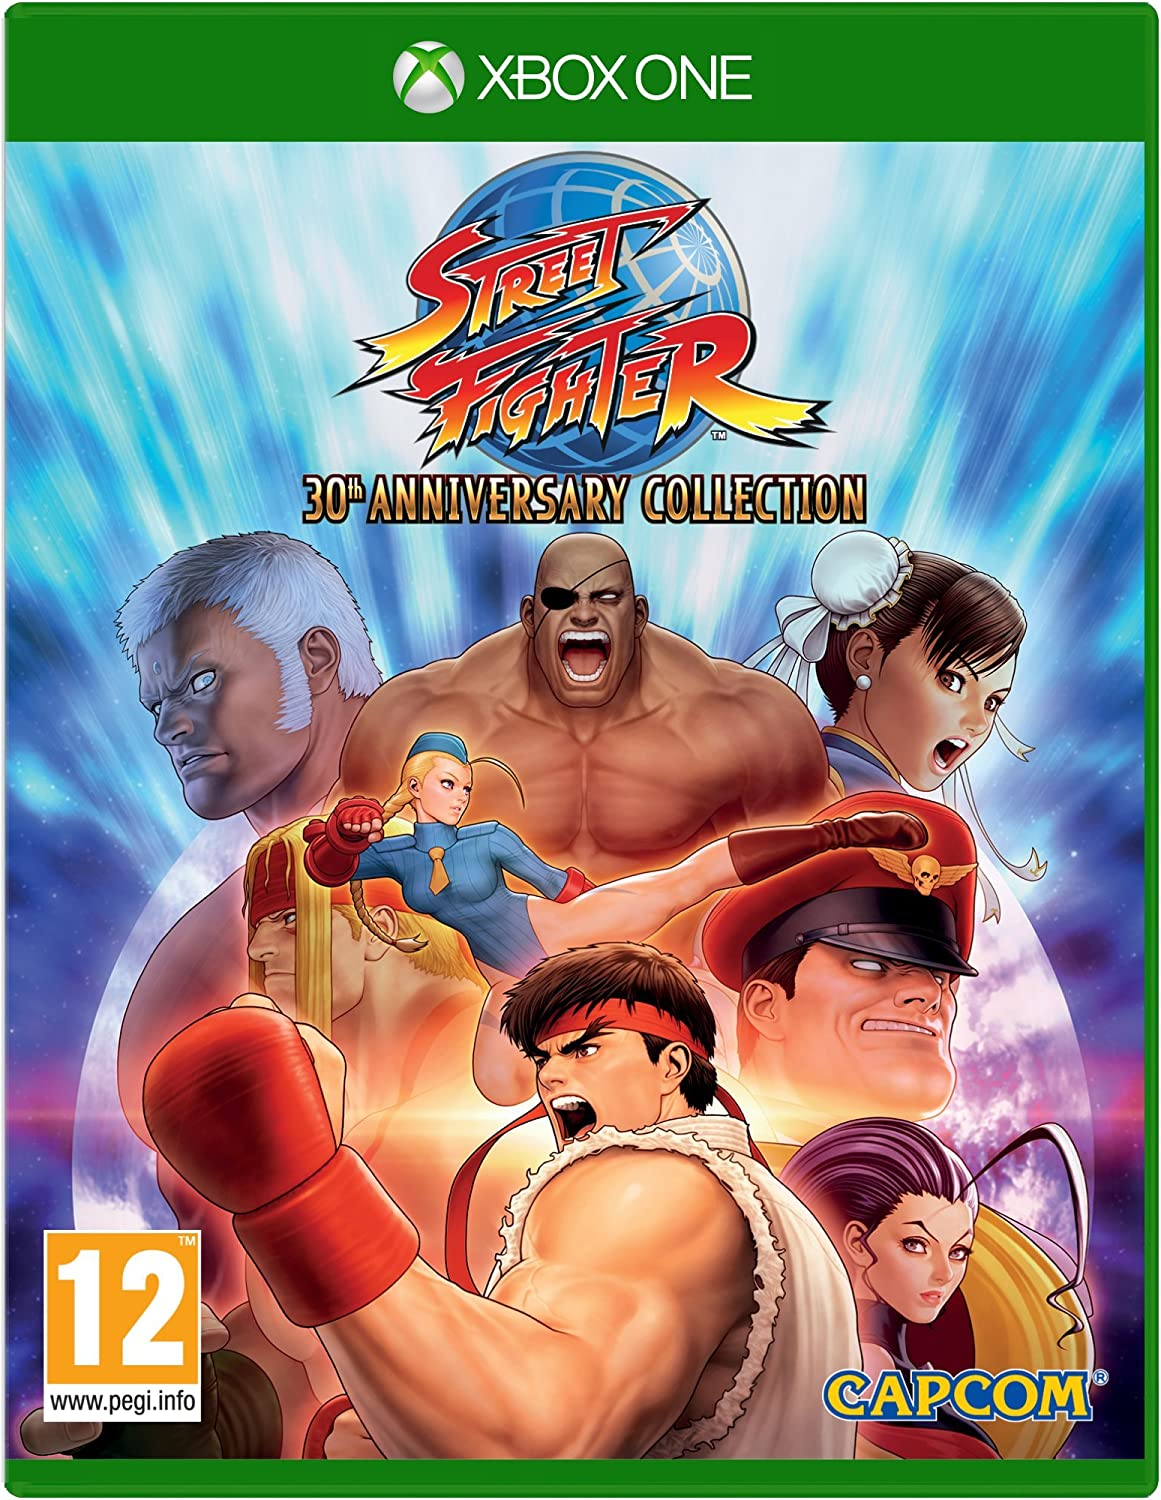 Street Fighter 30th Anniversary Collection - Xbox One [Importación inglesa]: Amazon.es: Videojuegos